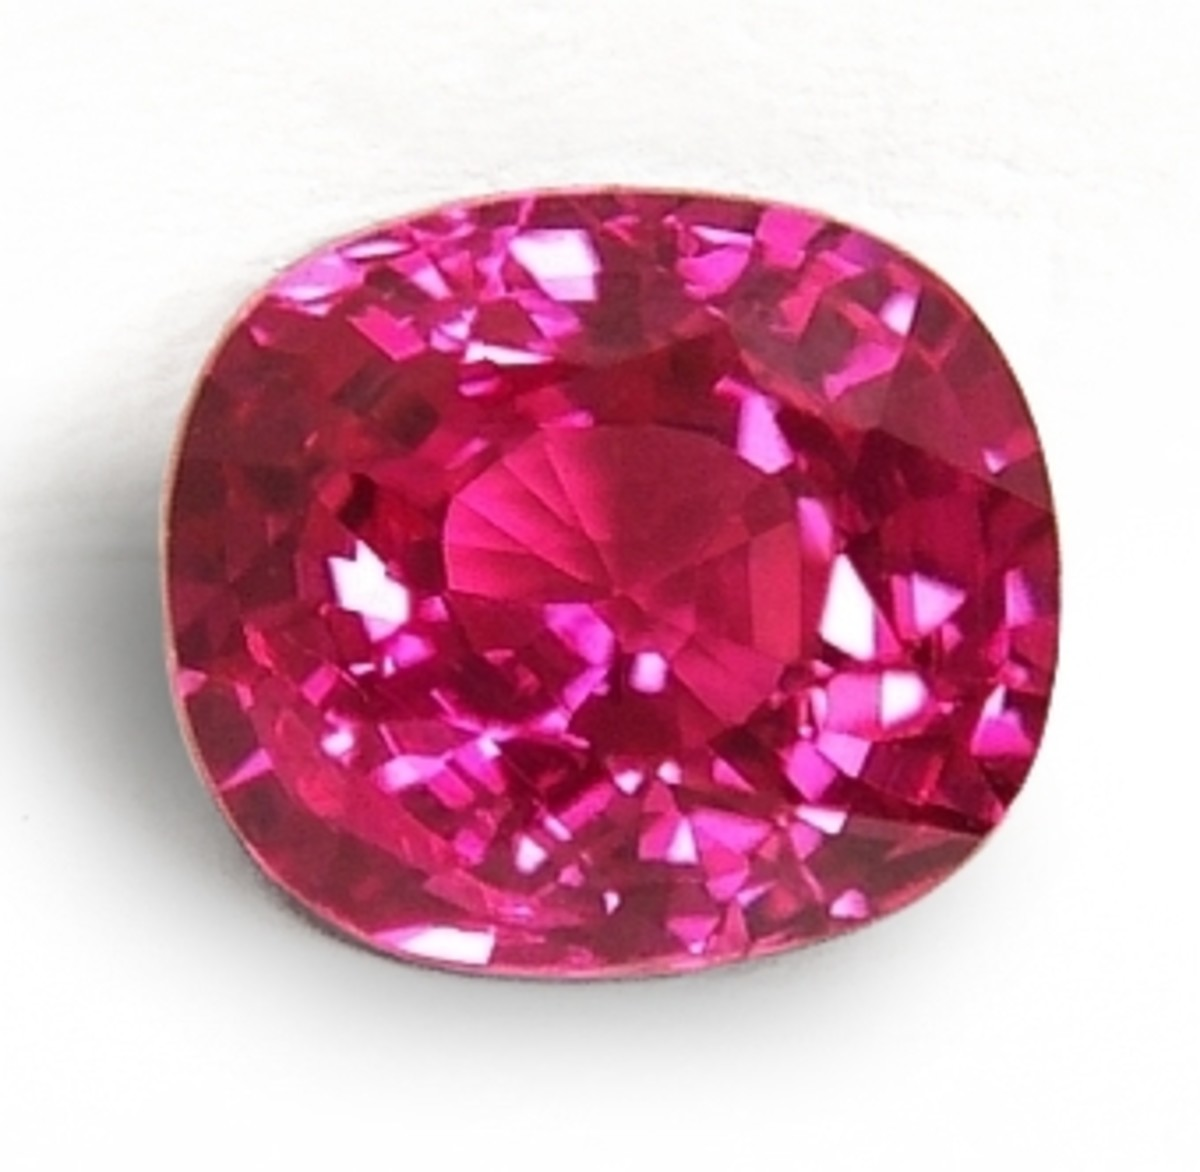 Benefits Of Ruby Gemstone